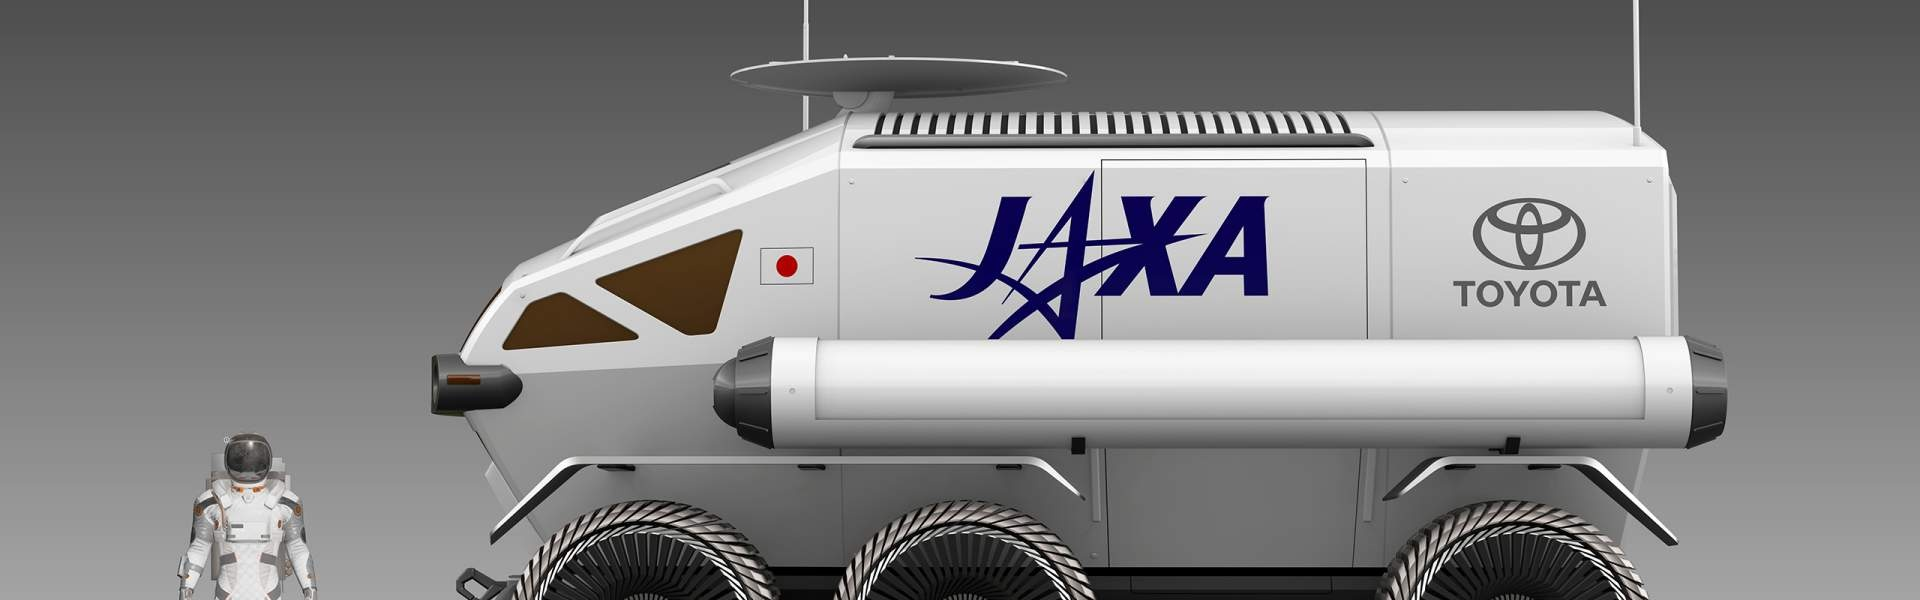 toyota-fuel-cell-electric-lunar-rover-project-4.jpg